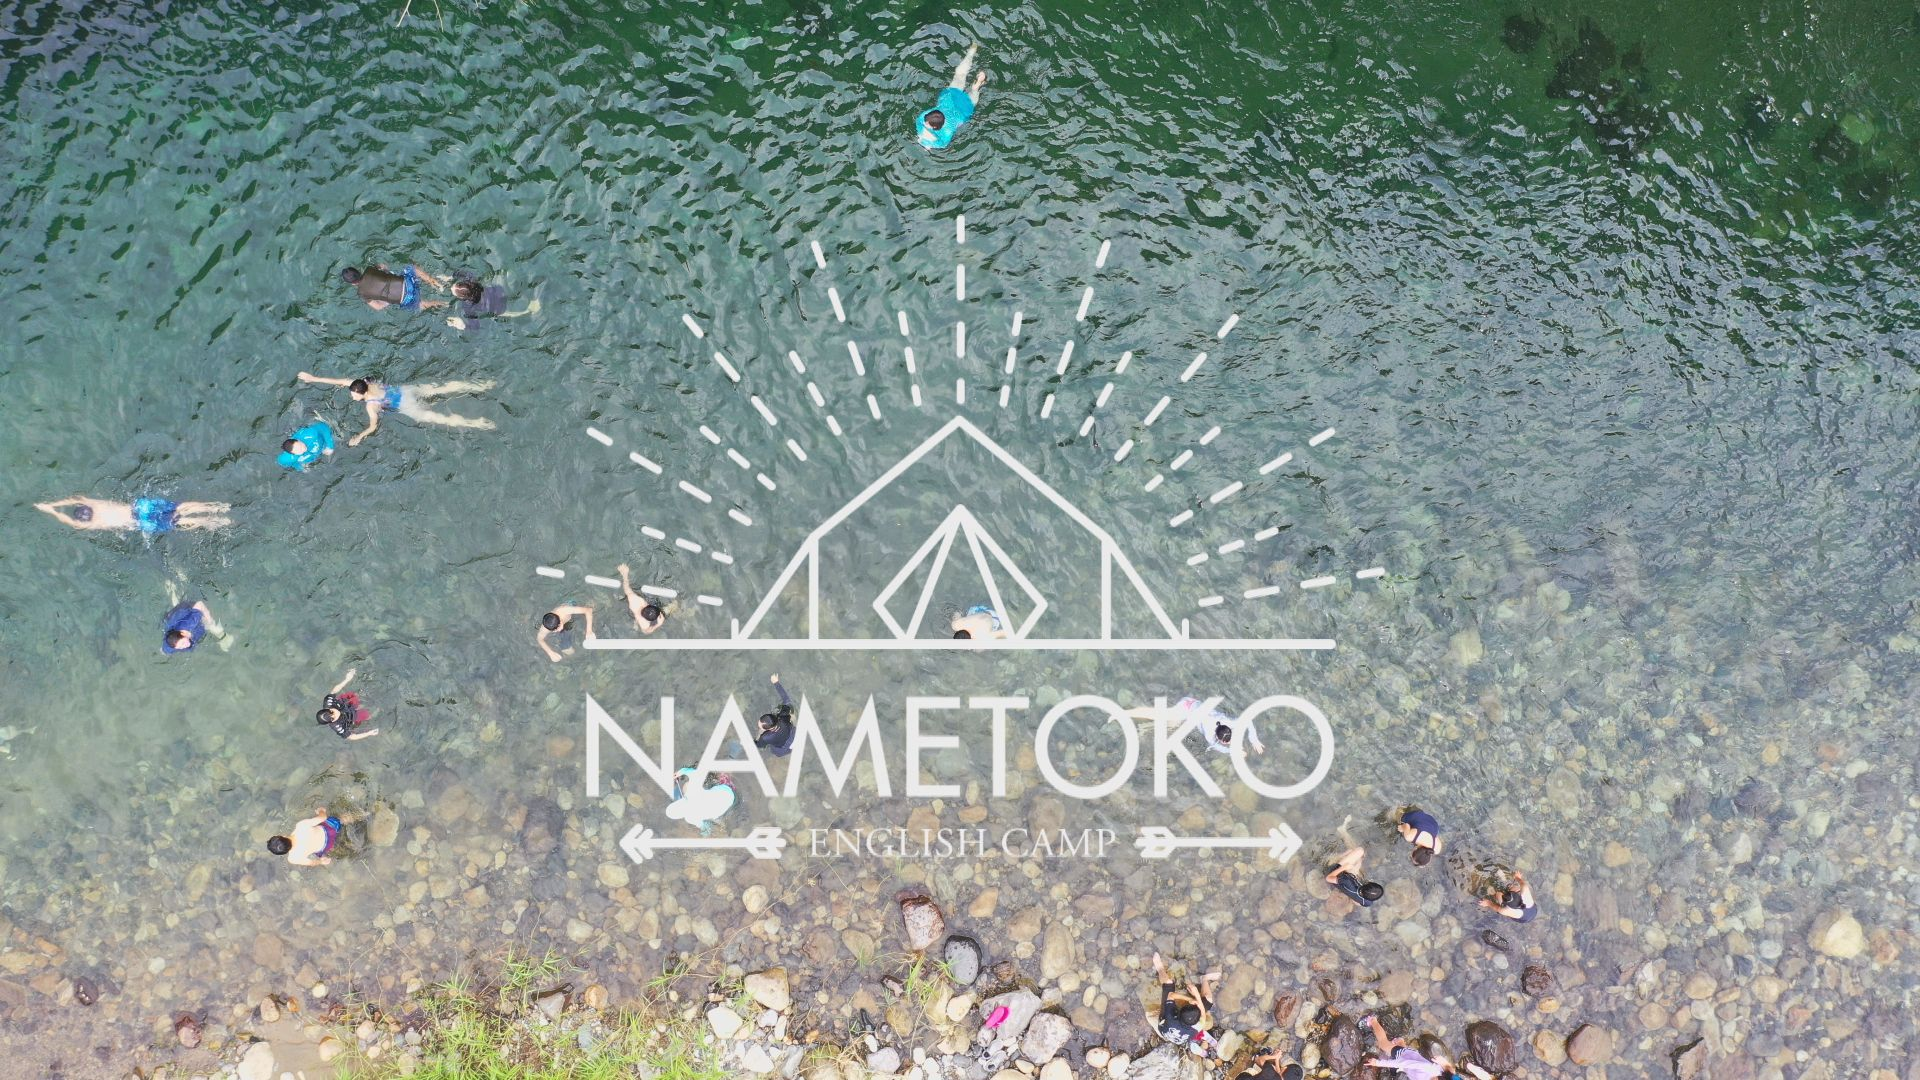 NAMETOKO ENGLISH CAMP